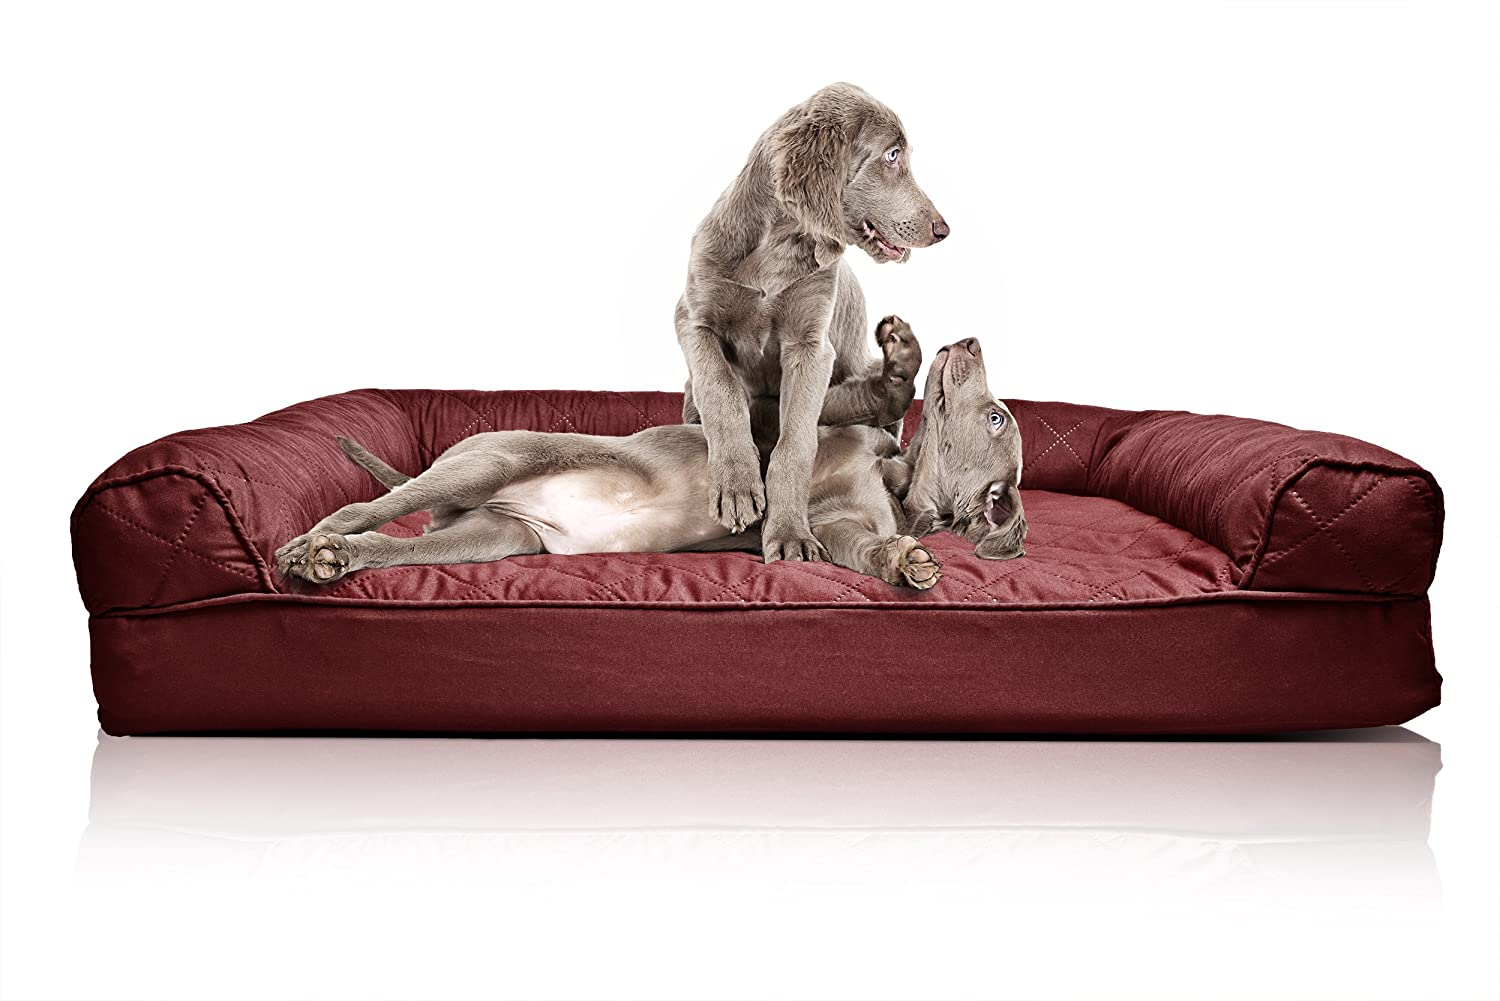 Amazoncom FurHaven Orthopedic Dog Couch Sofa Bed for Dogs and